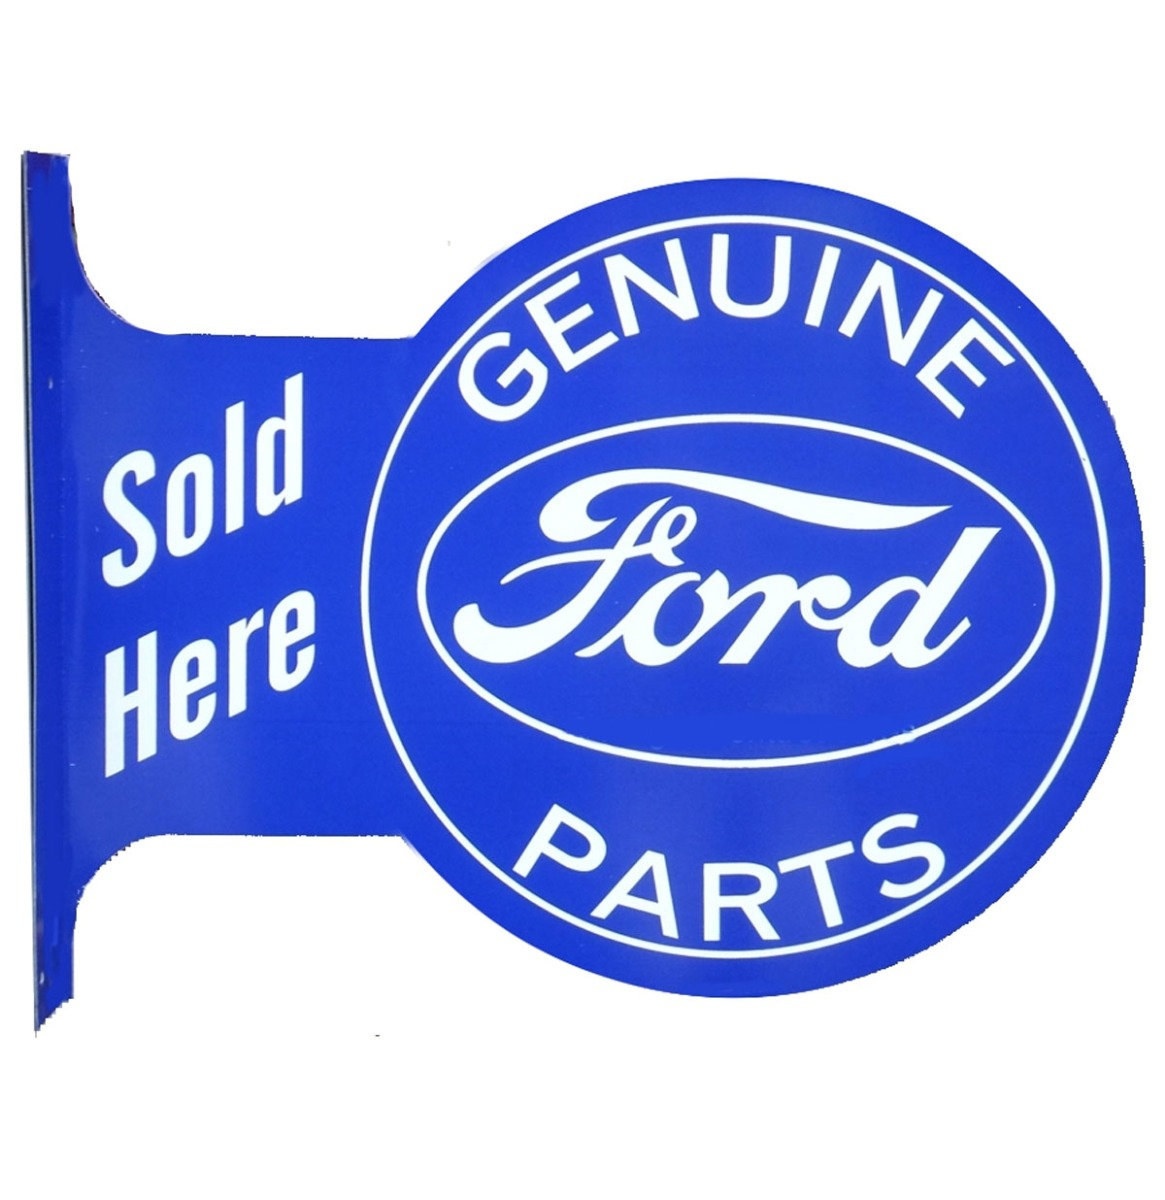 Ford Genuine Parts Sold Here Uithangbord 44,5 x 34,5 cm